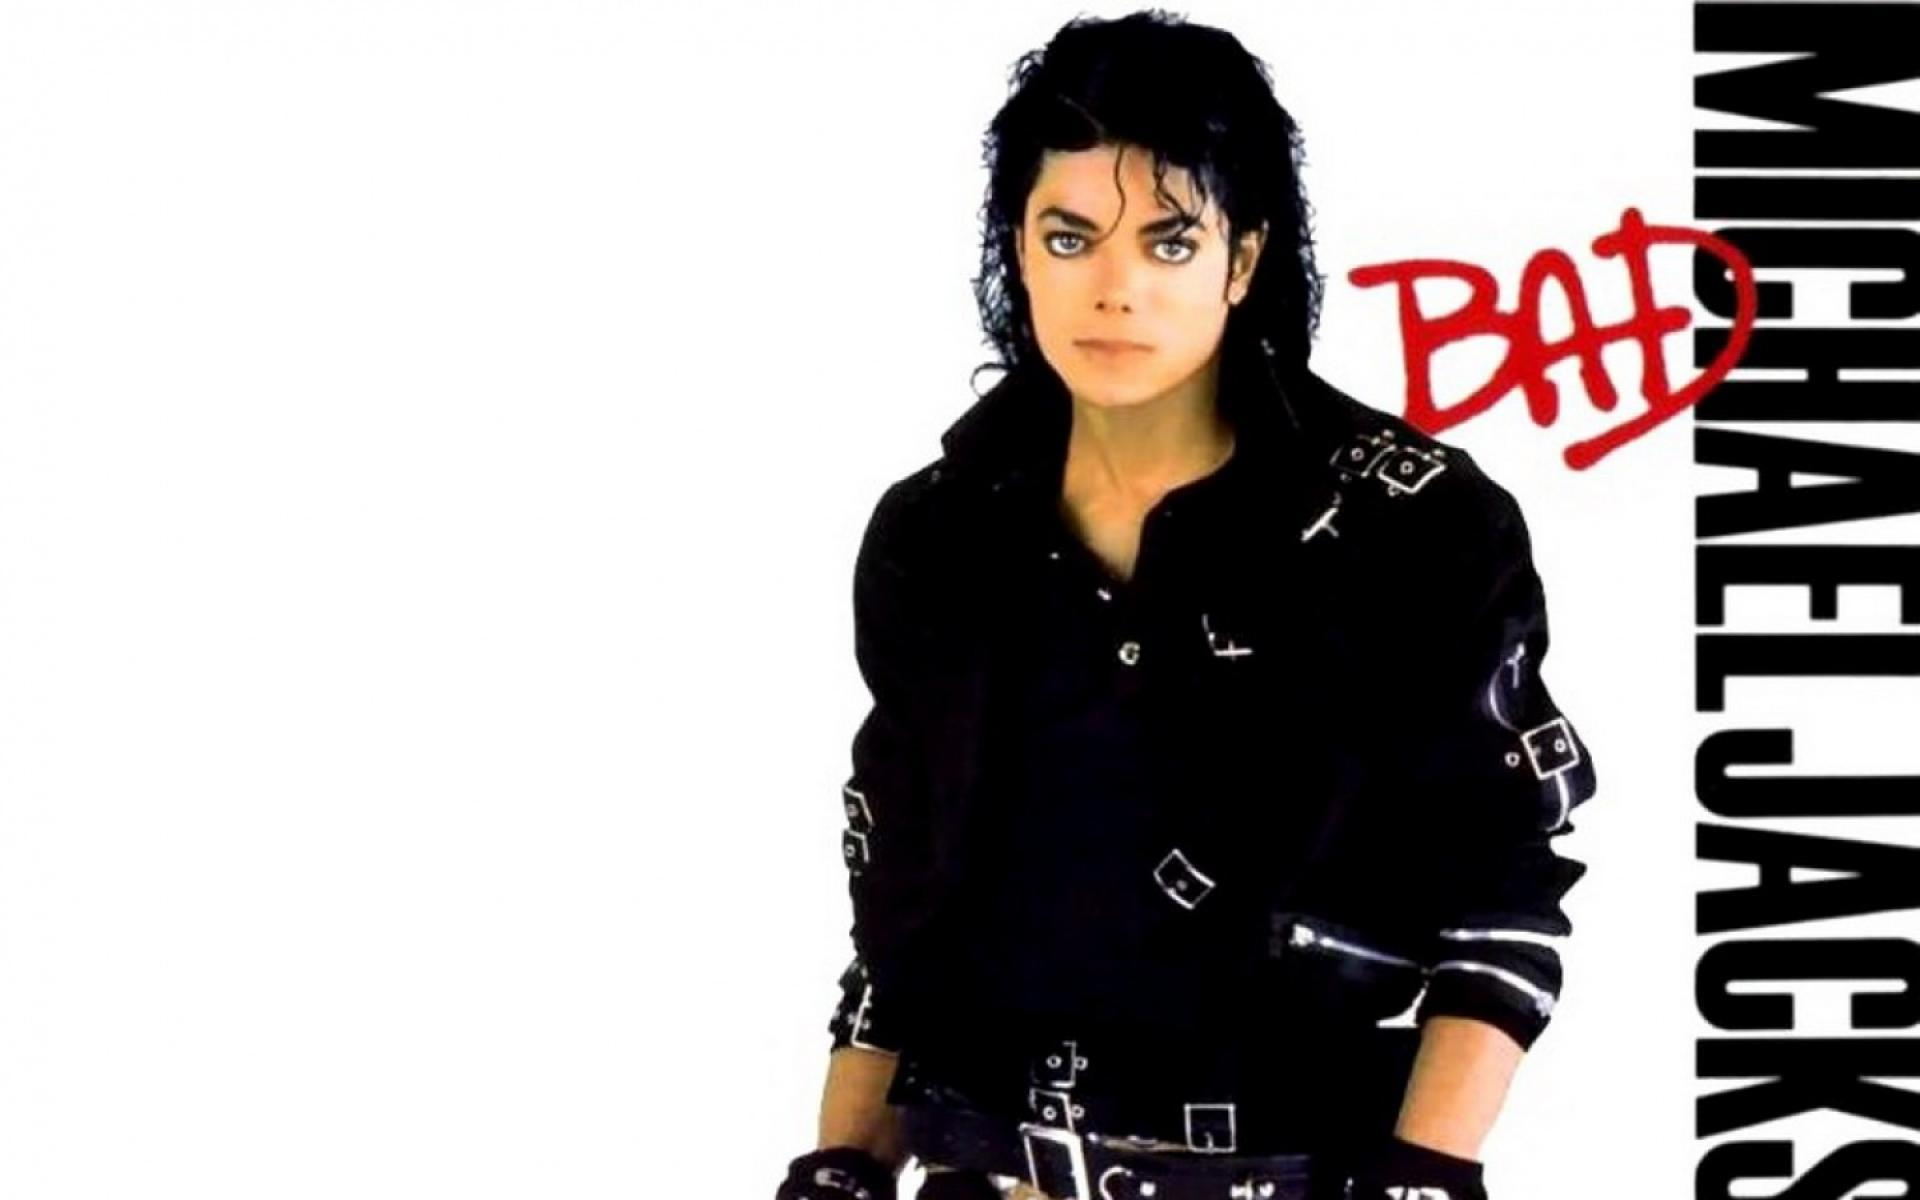 Michael Jackson Dancing Bad Hd Images 3 HD Wallpaperscom